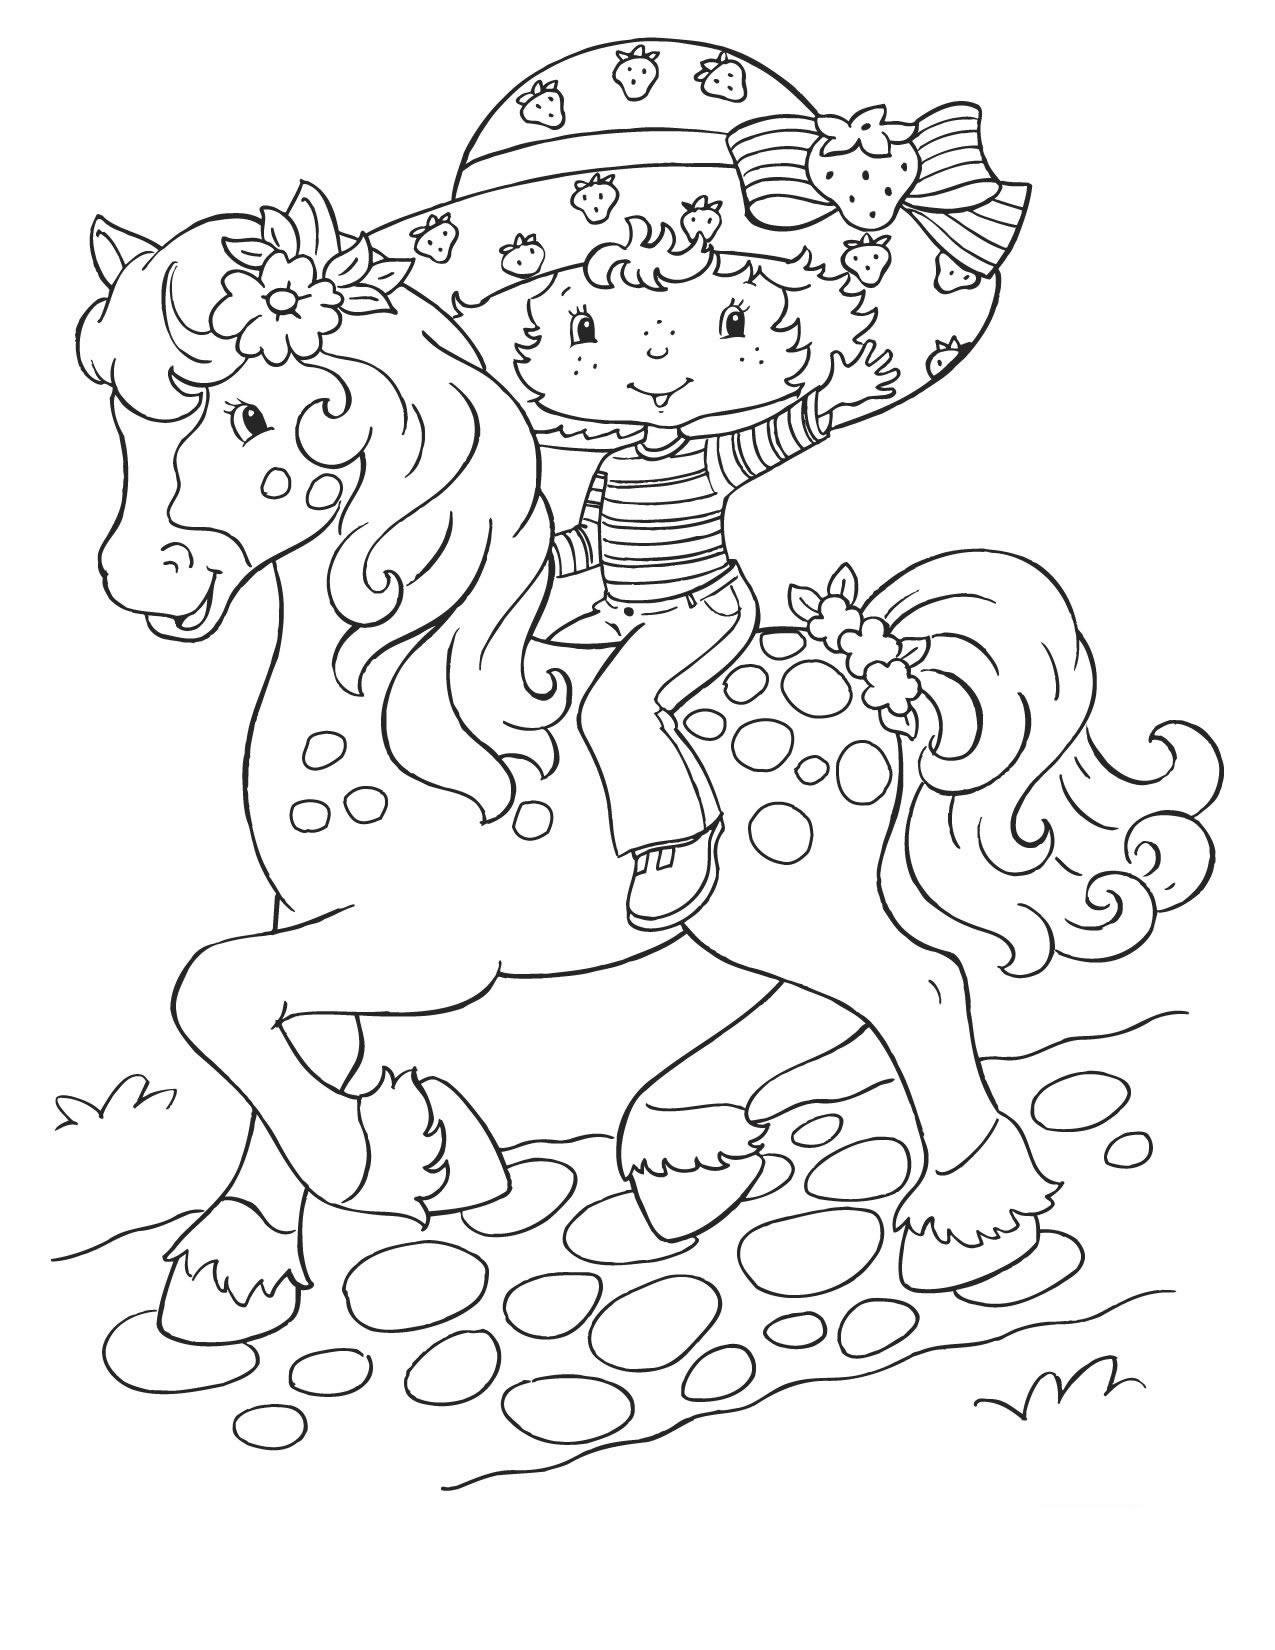 new strawberry shortcake coloring pages printable strawberry shortcake coloring pages strawberry new pages coloring printable shortcake